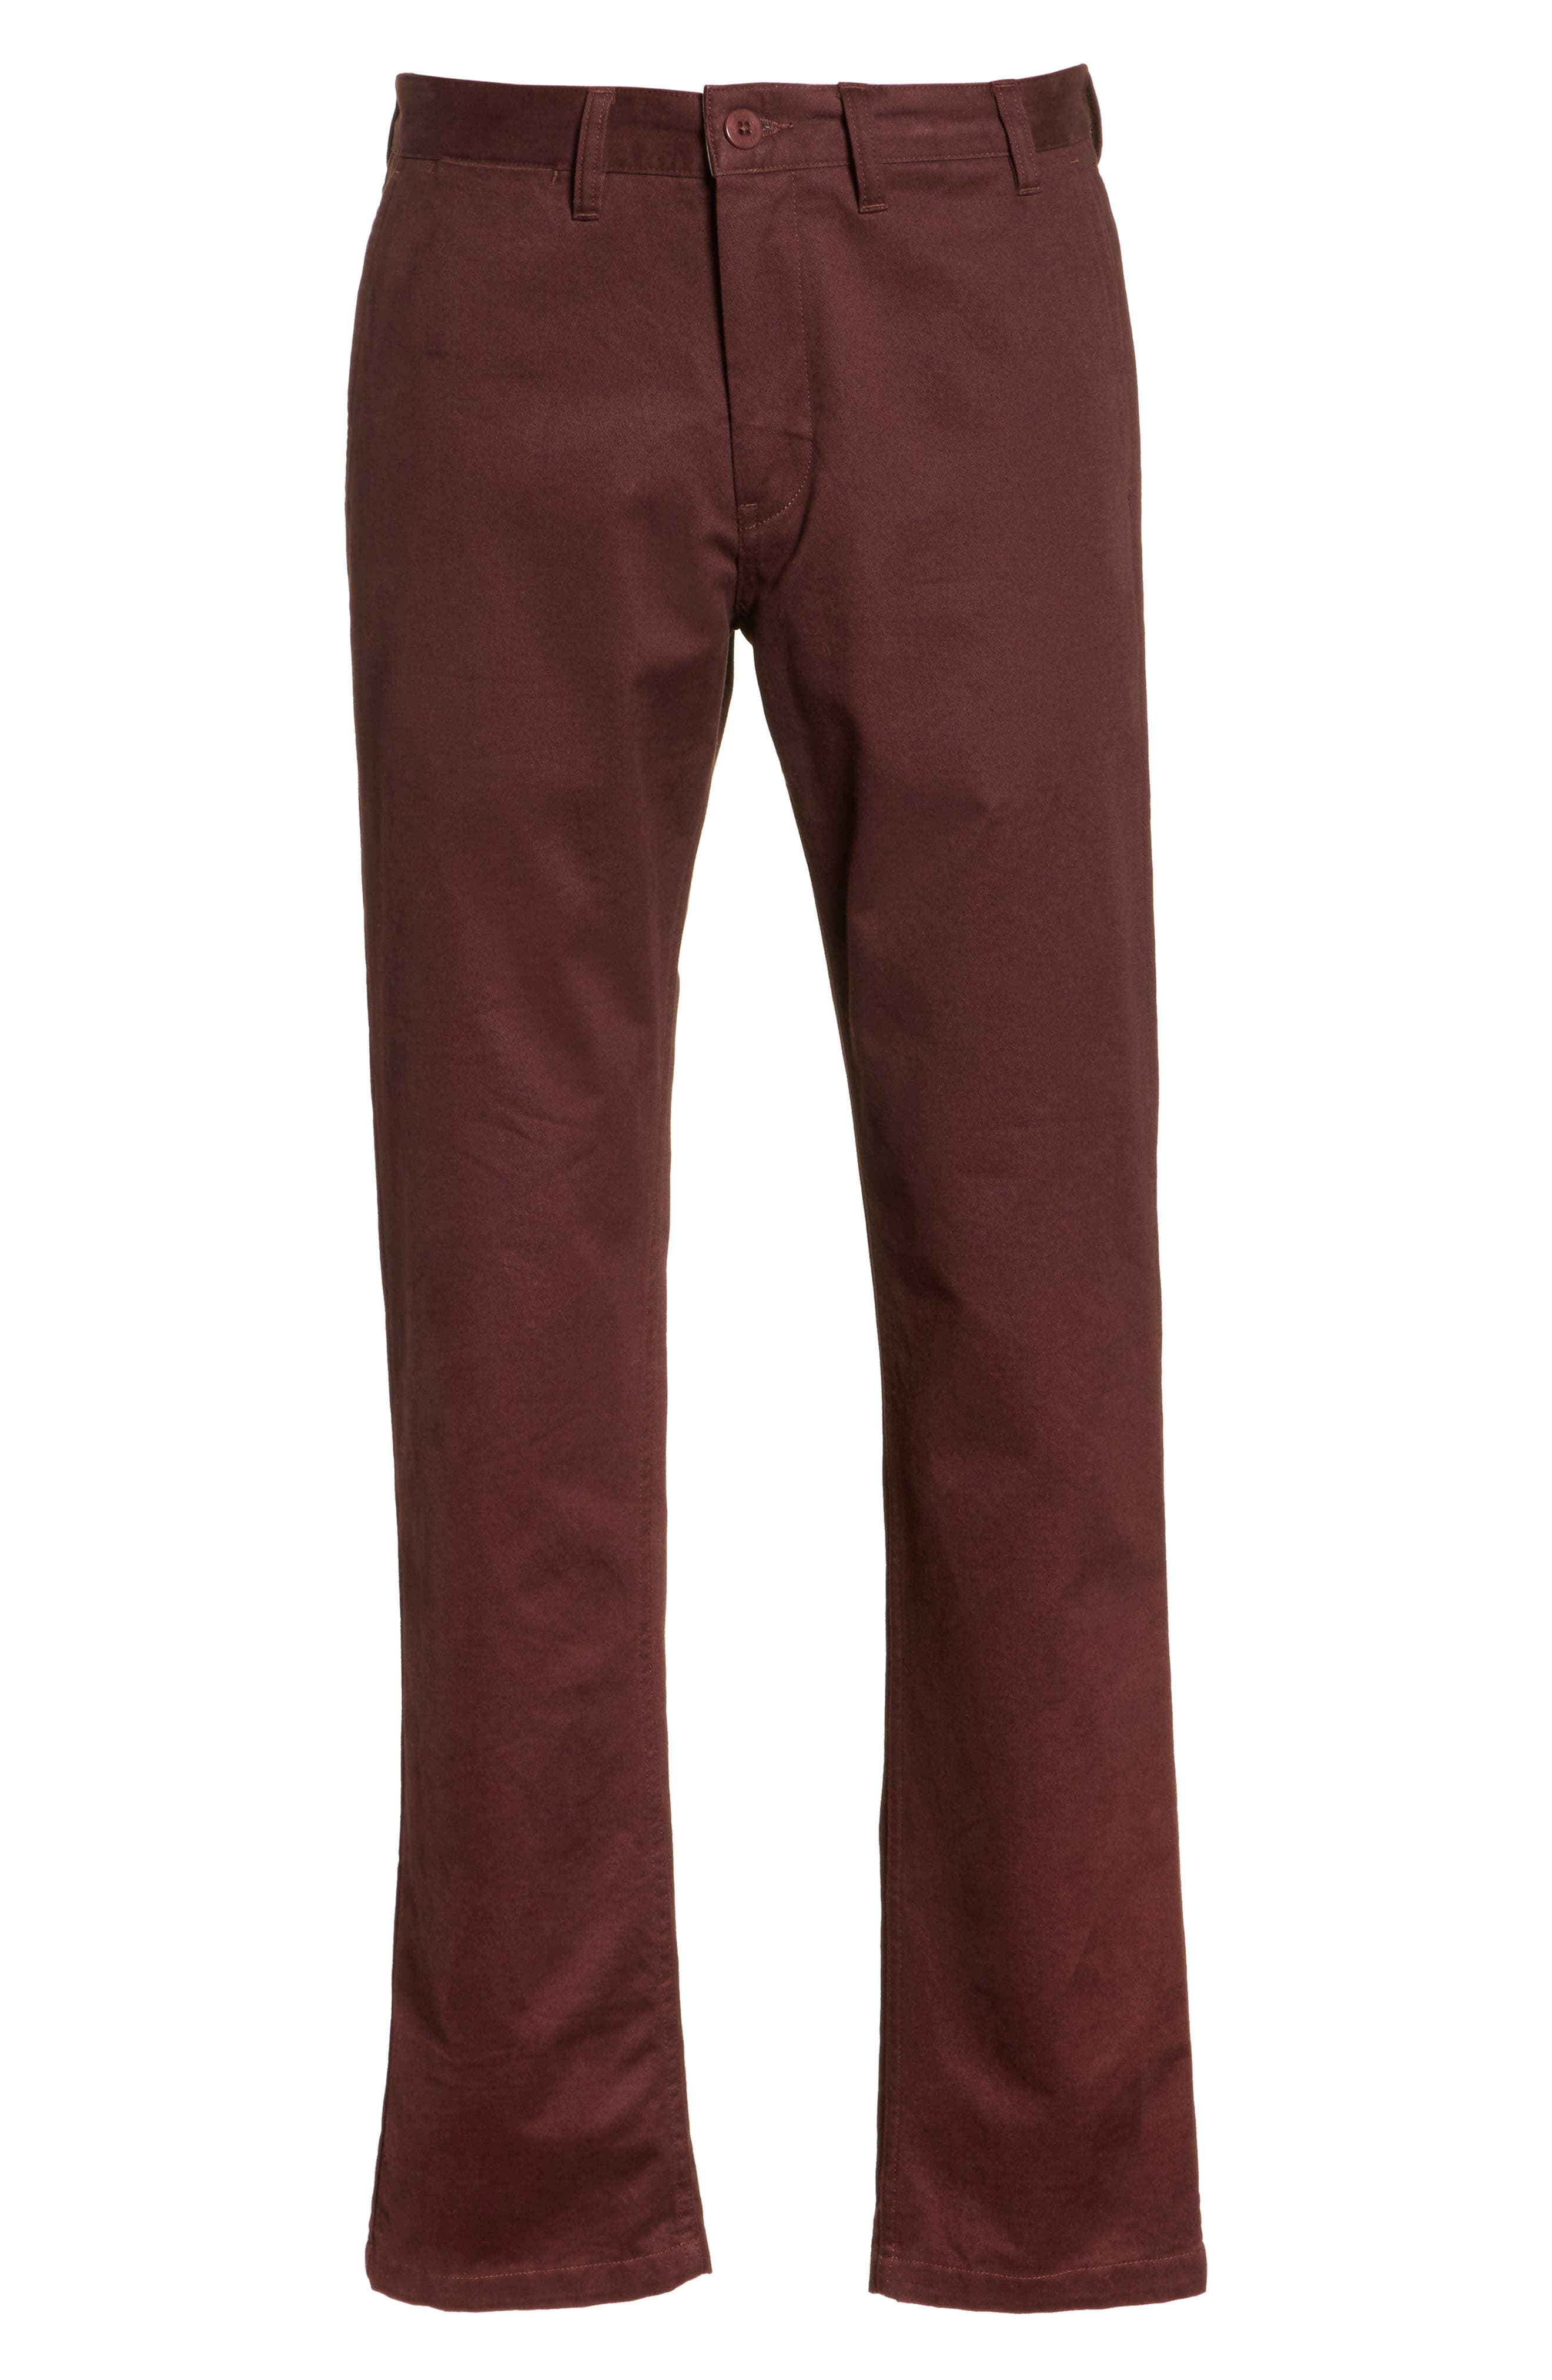 Aros Brushed Twill Chinos,                             Alternate thumbnail 6, color,